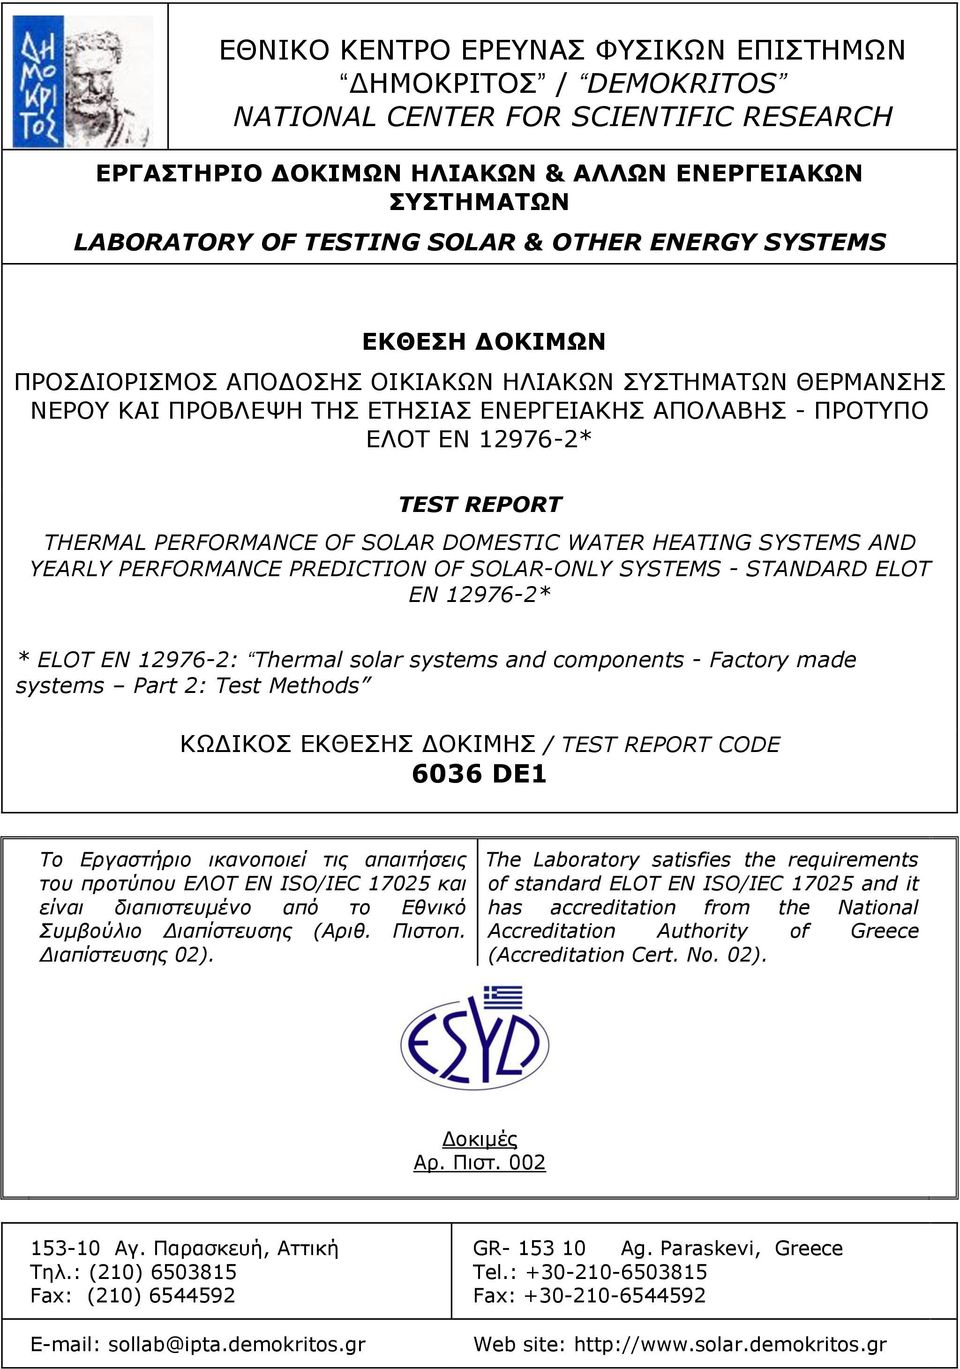 DOMESTIC WATER HEATING SYSTEMS AND YEARLY PERFORMANCE PREDICTION OF SOLAR-ONLY SYSTEMS - STANDARD ELOT EN 12976-2* * ELOT EN 12976-2: Thermal solar systems and components - Factory made systems Part